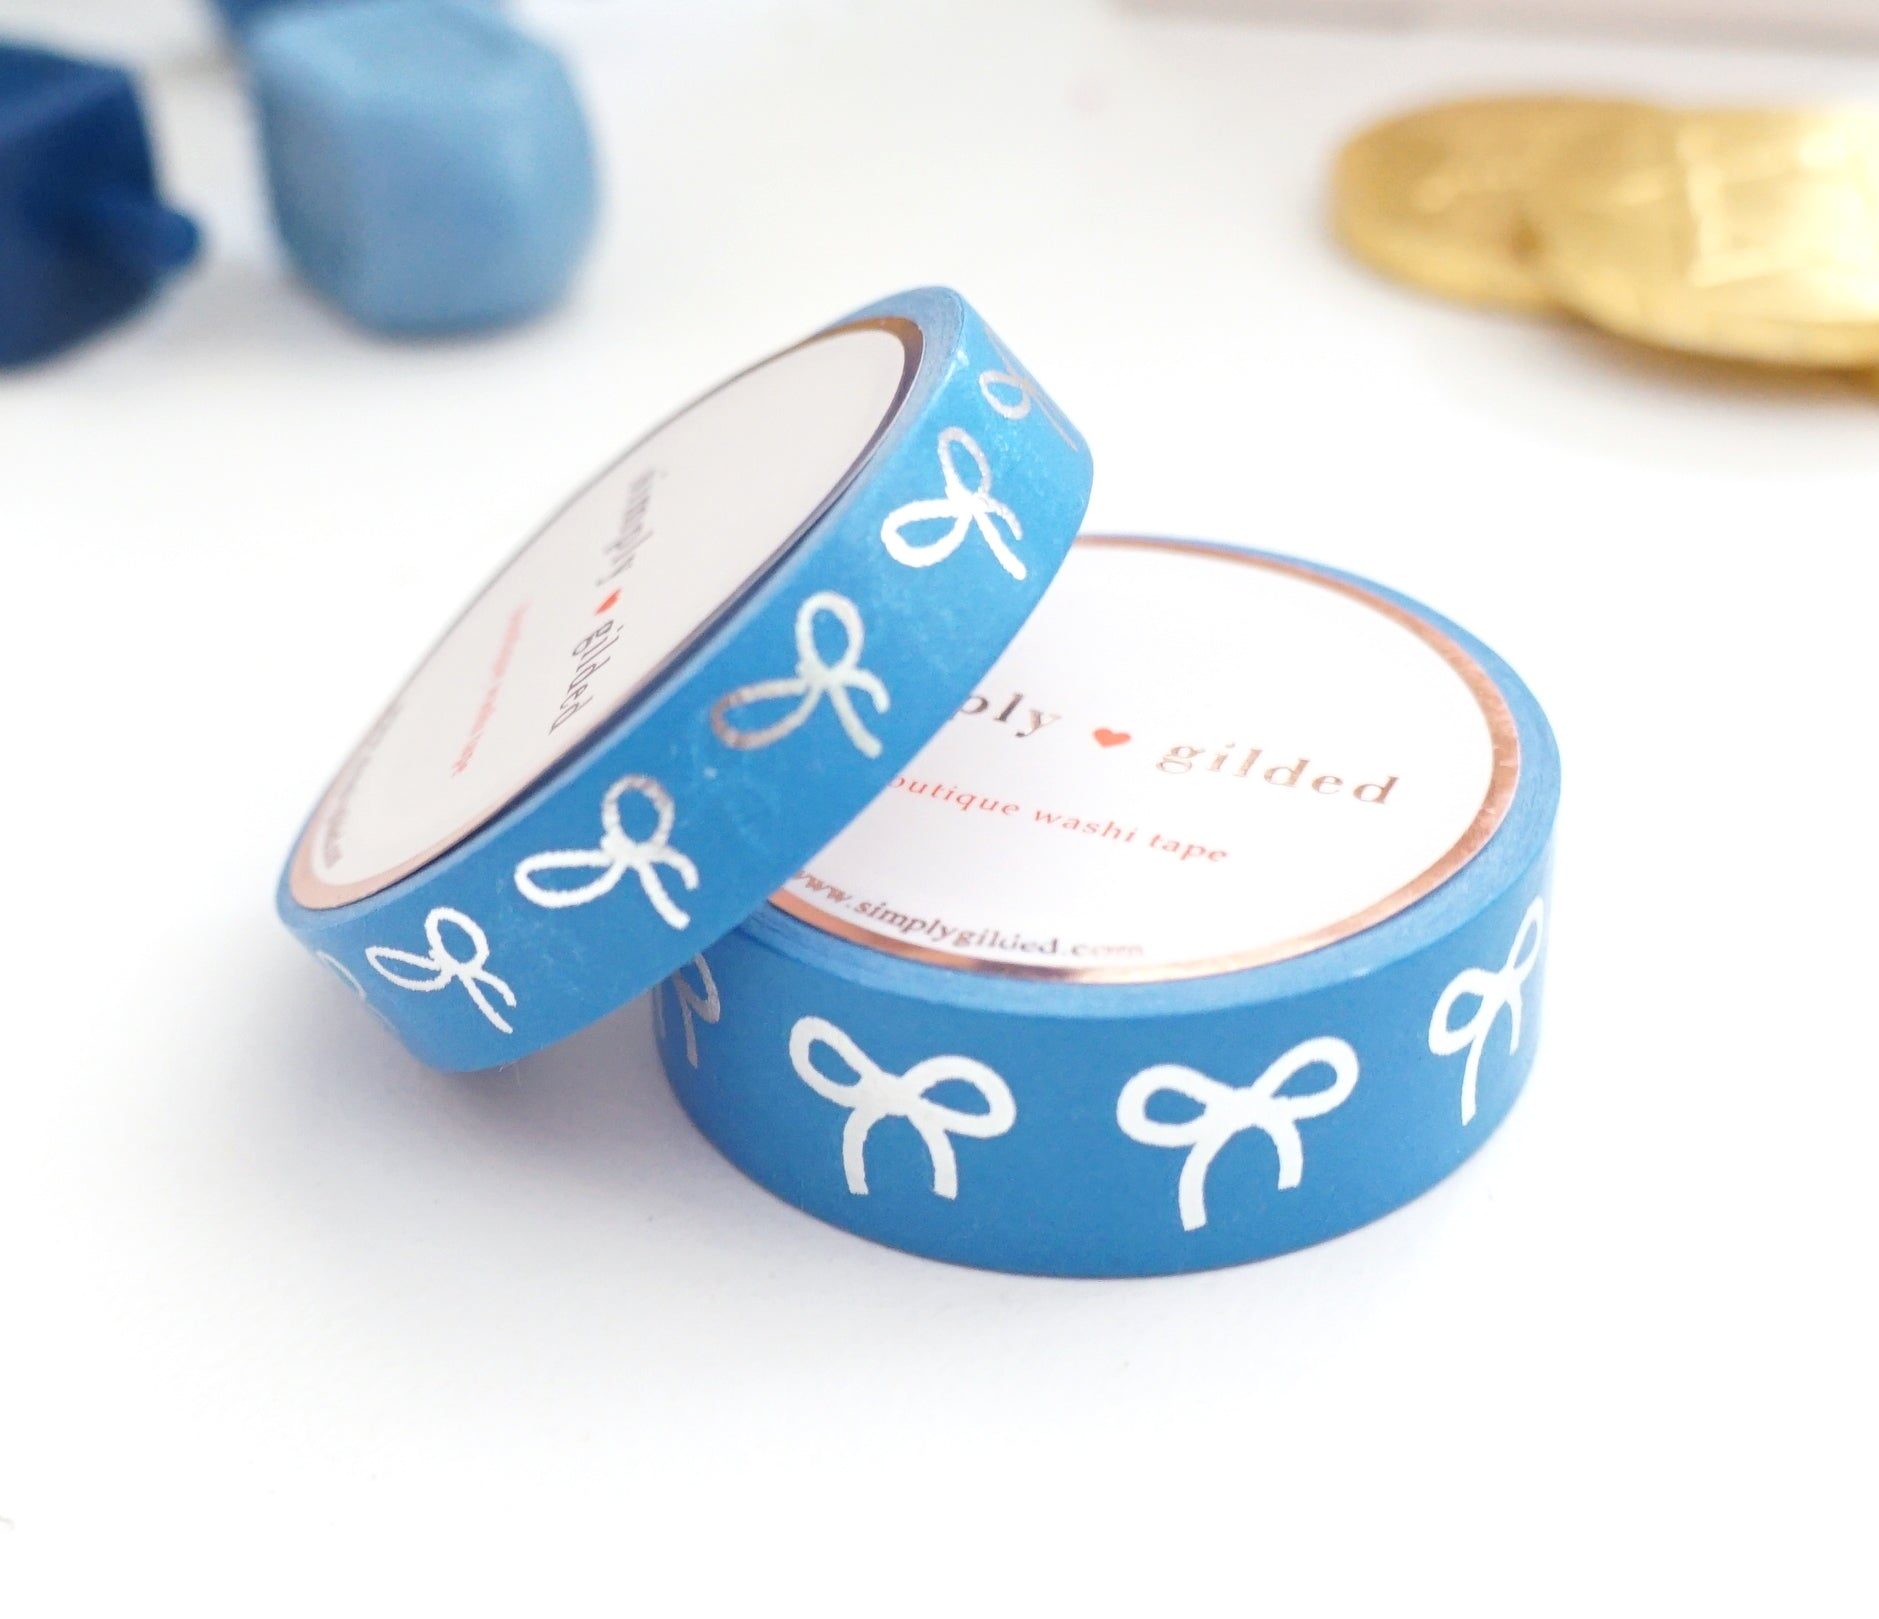 WASHI TAPE 15/10mm BOW set - Blue BLISS + silver foil